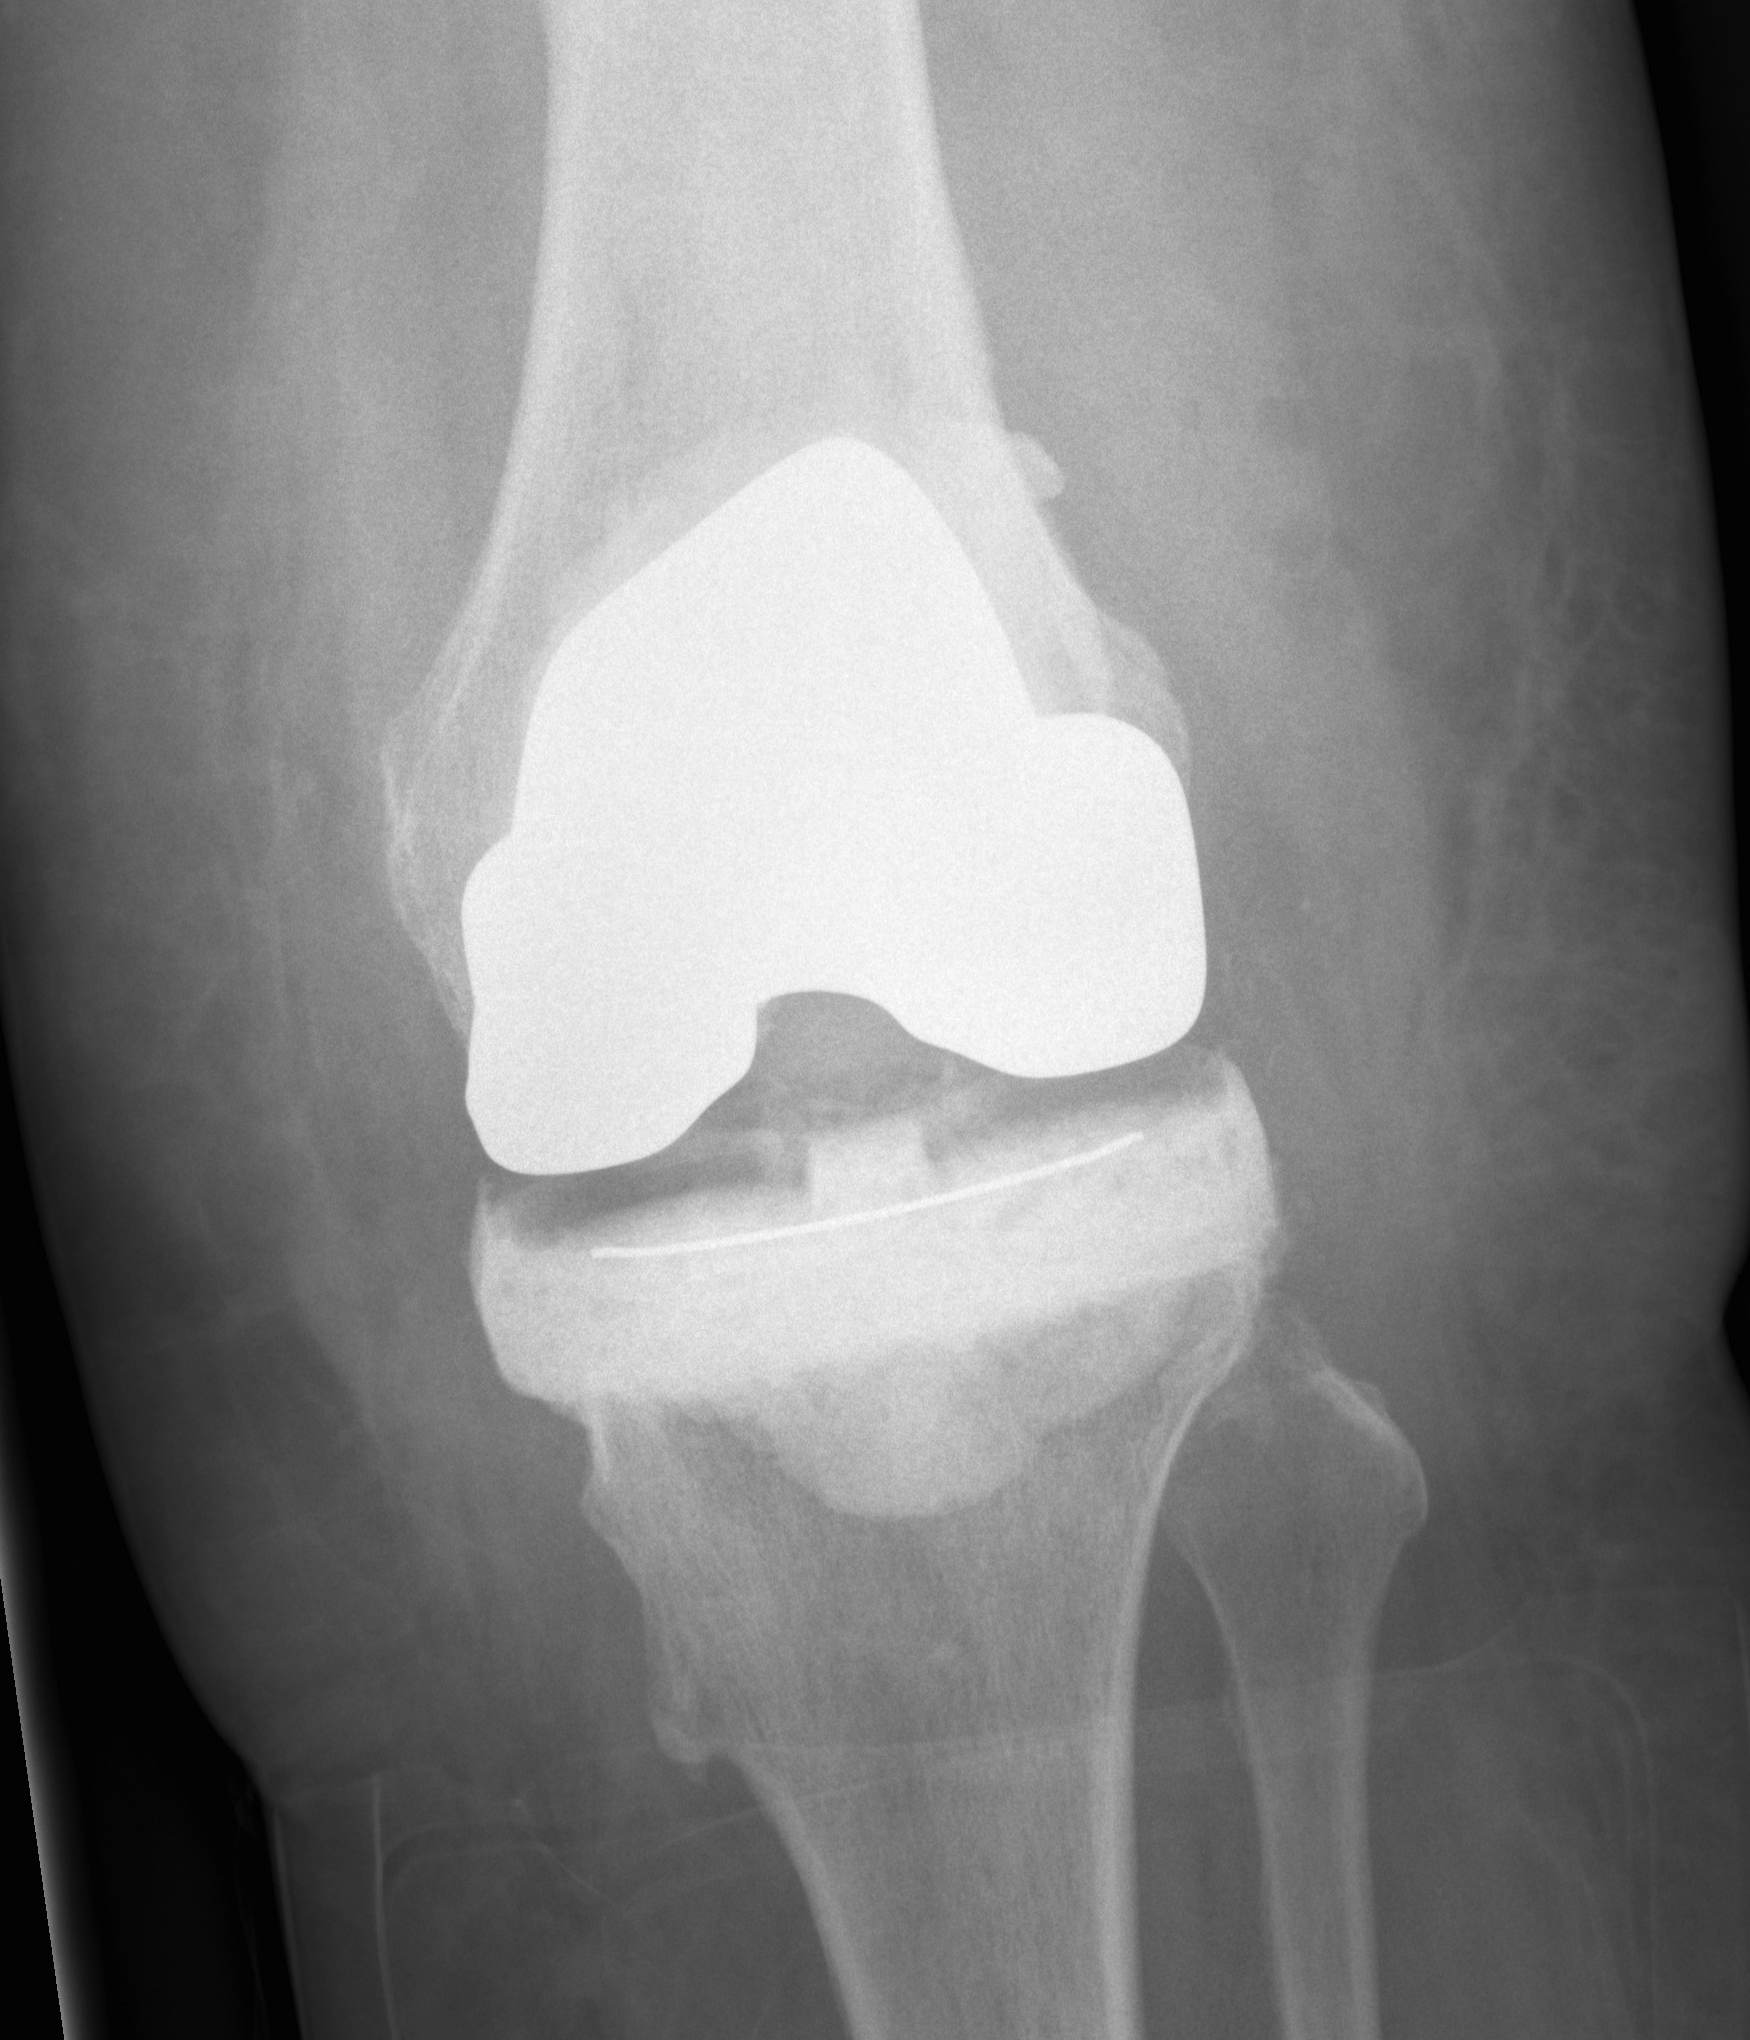 Infected TKR Autoclave Femur Cement Tibia AP